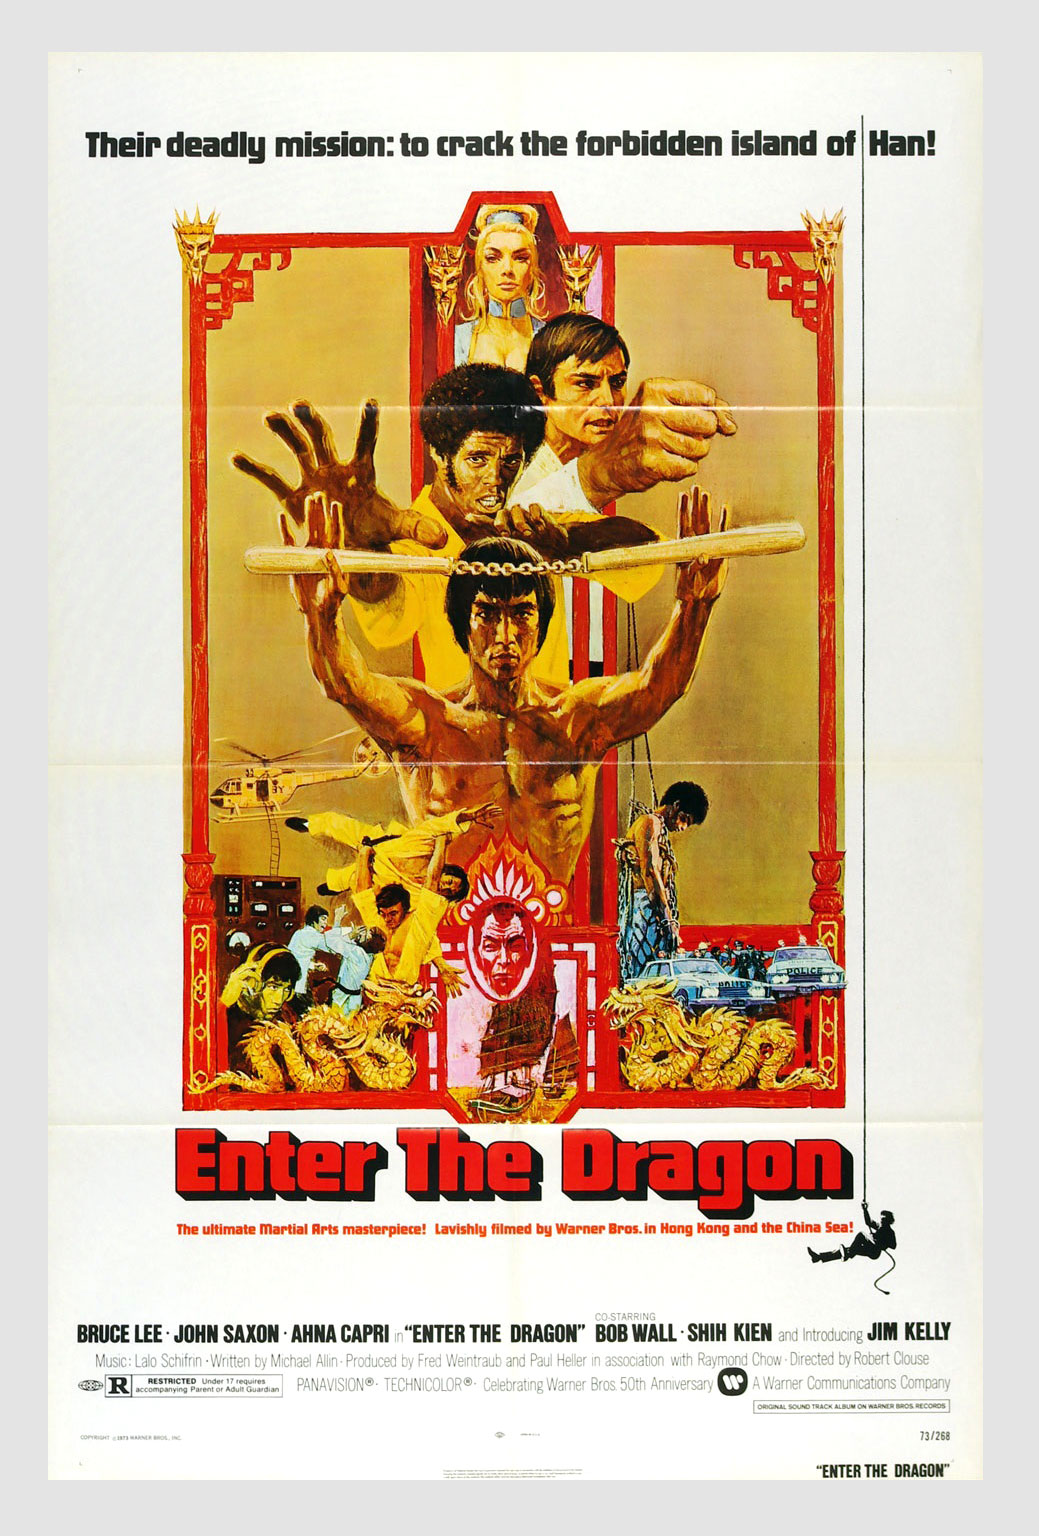 Bruce Lee Enter The Dragon 1973  Movie Poster 27 x 41 1 sheet